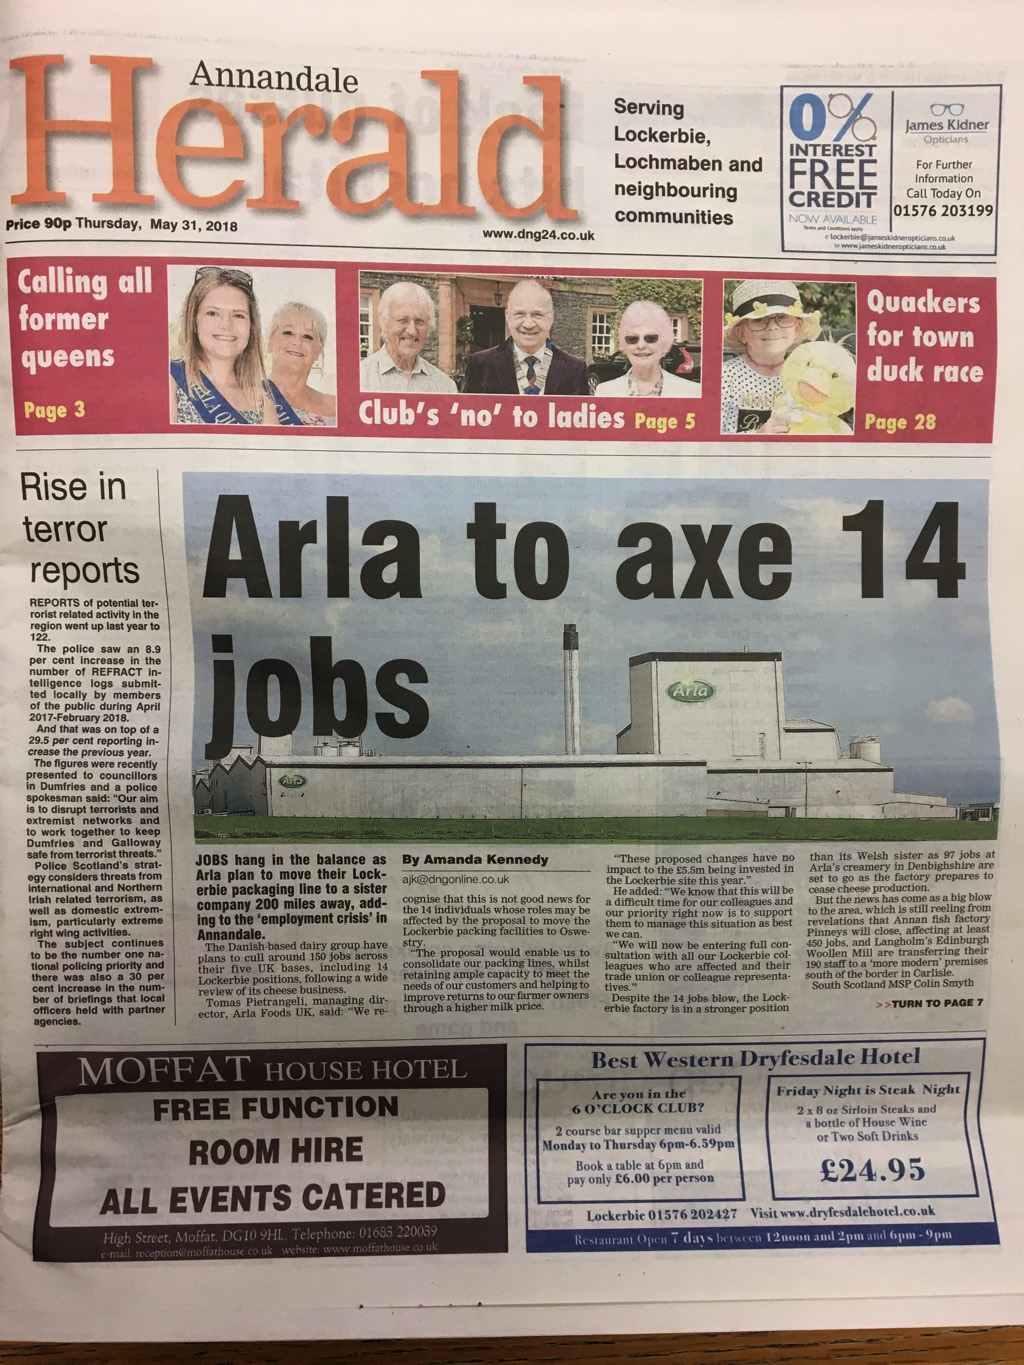 Annandale Herald 20180531